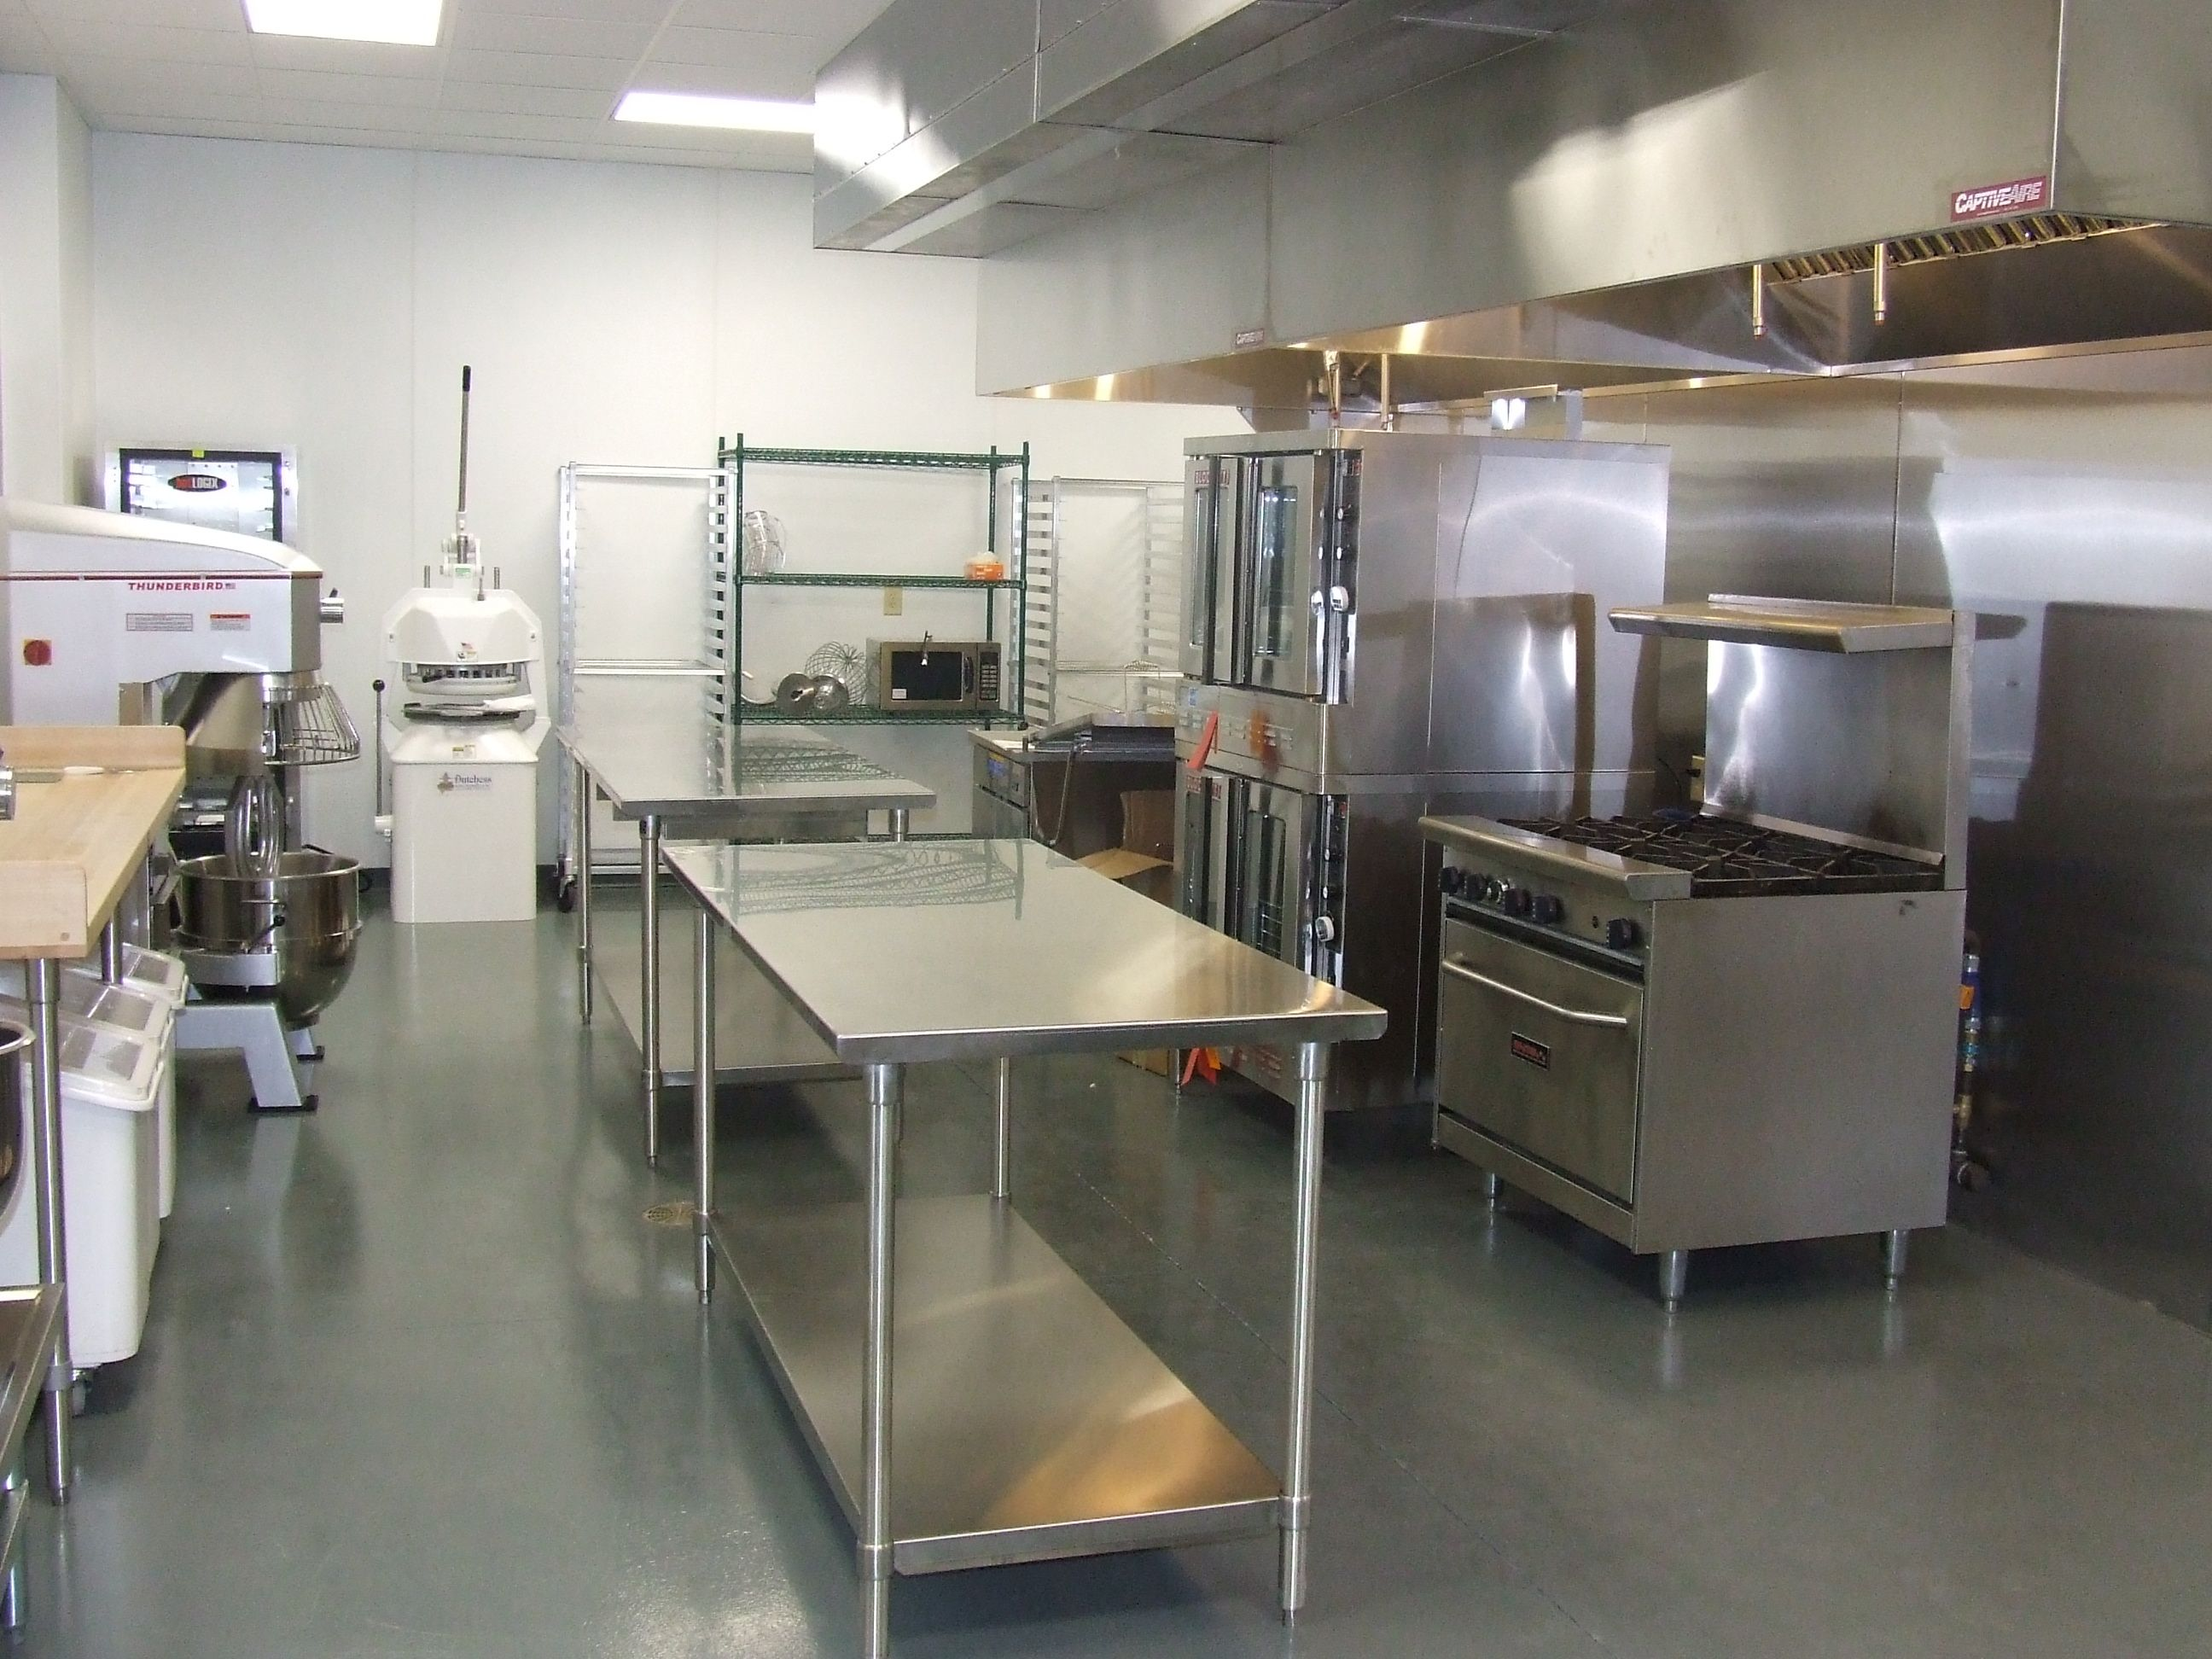 commercial kitchen flooring home bakery is a floor plan for 1200 square foot